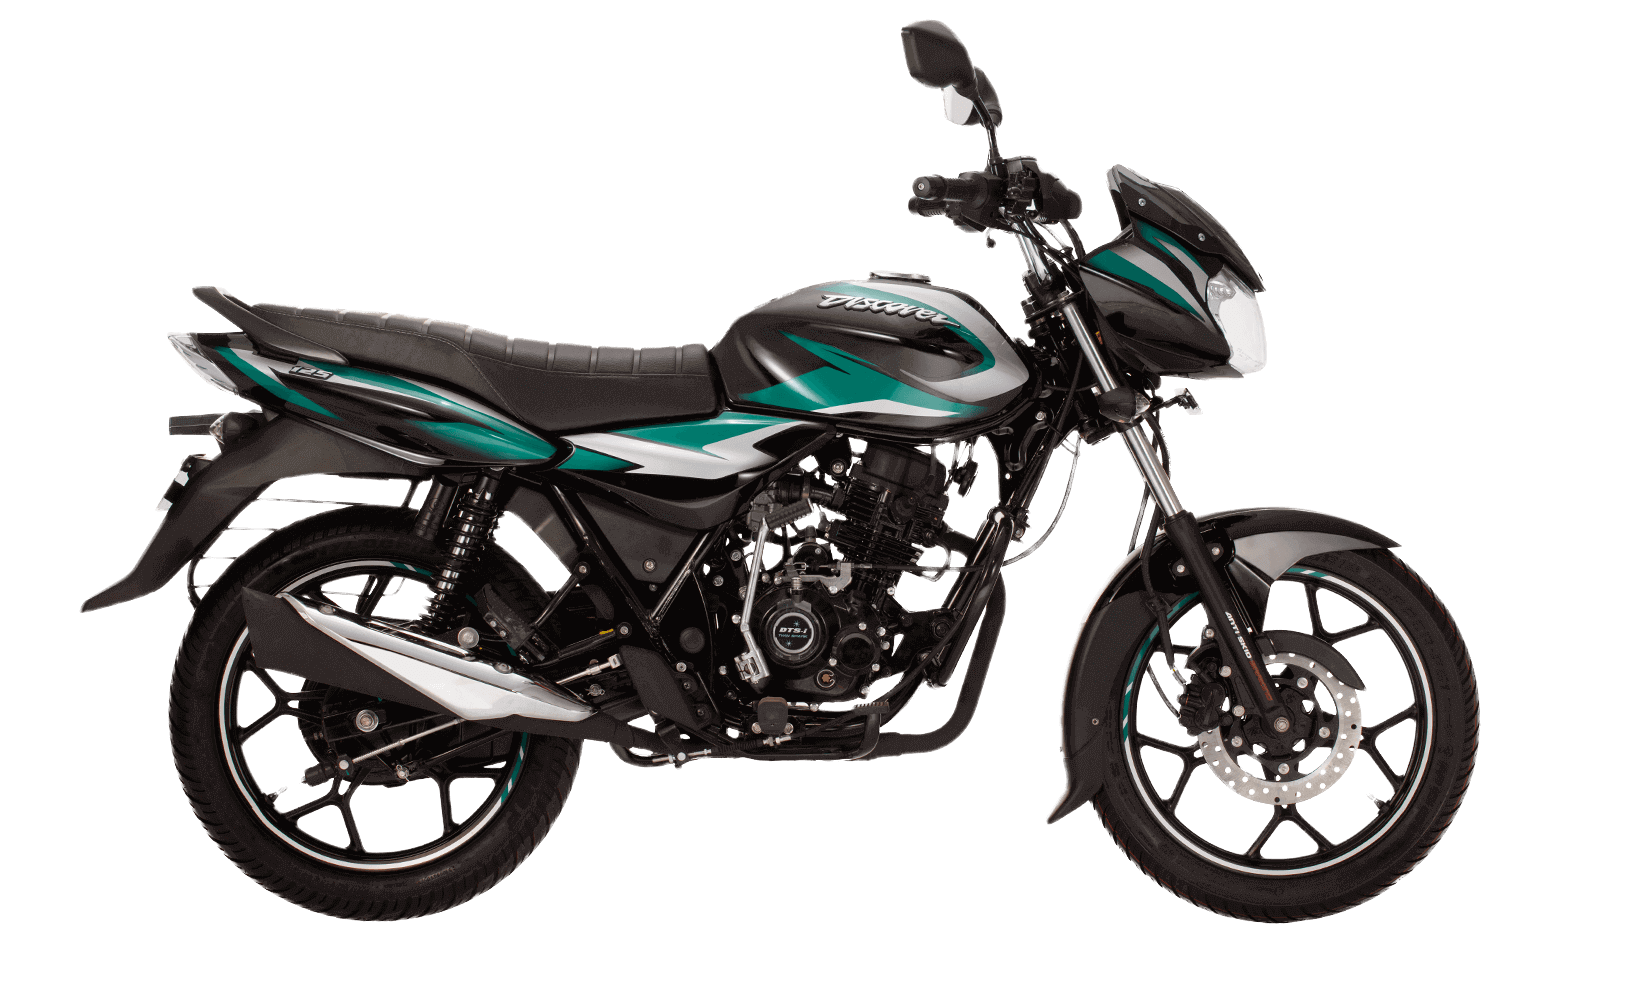 Black and green color New Model Bajaj Discover 125cc Motorcycle Price